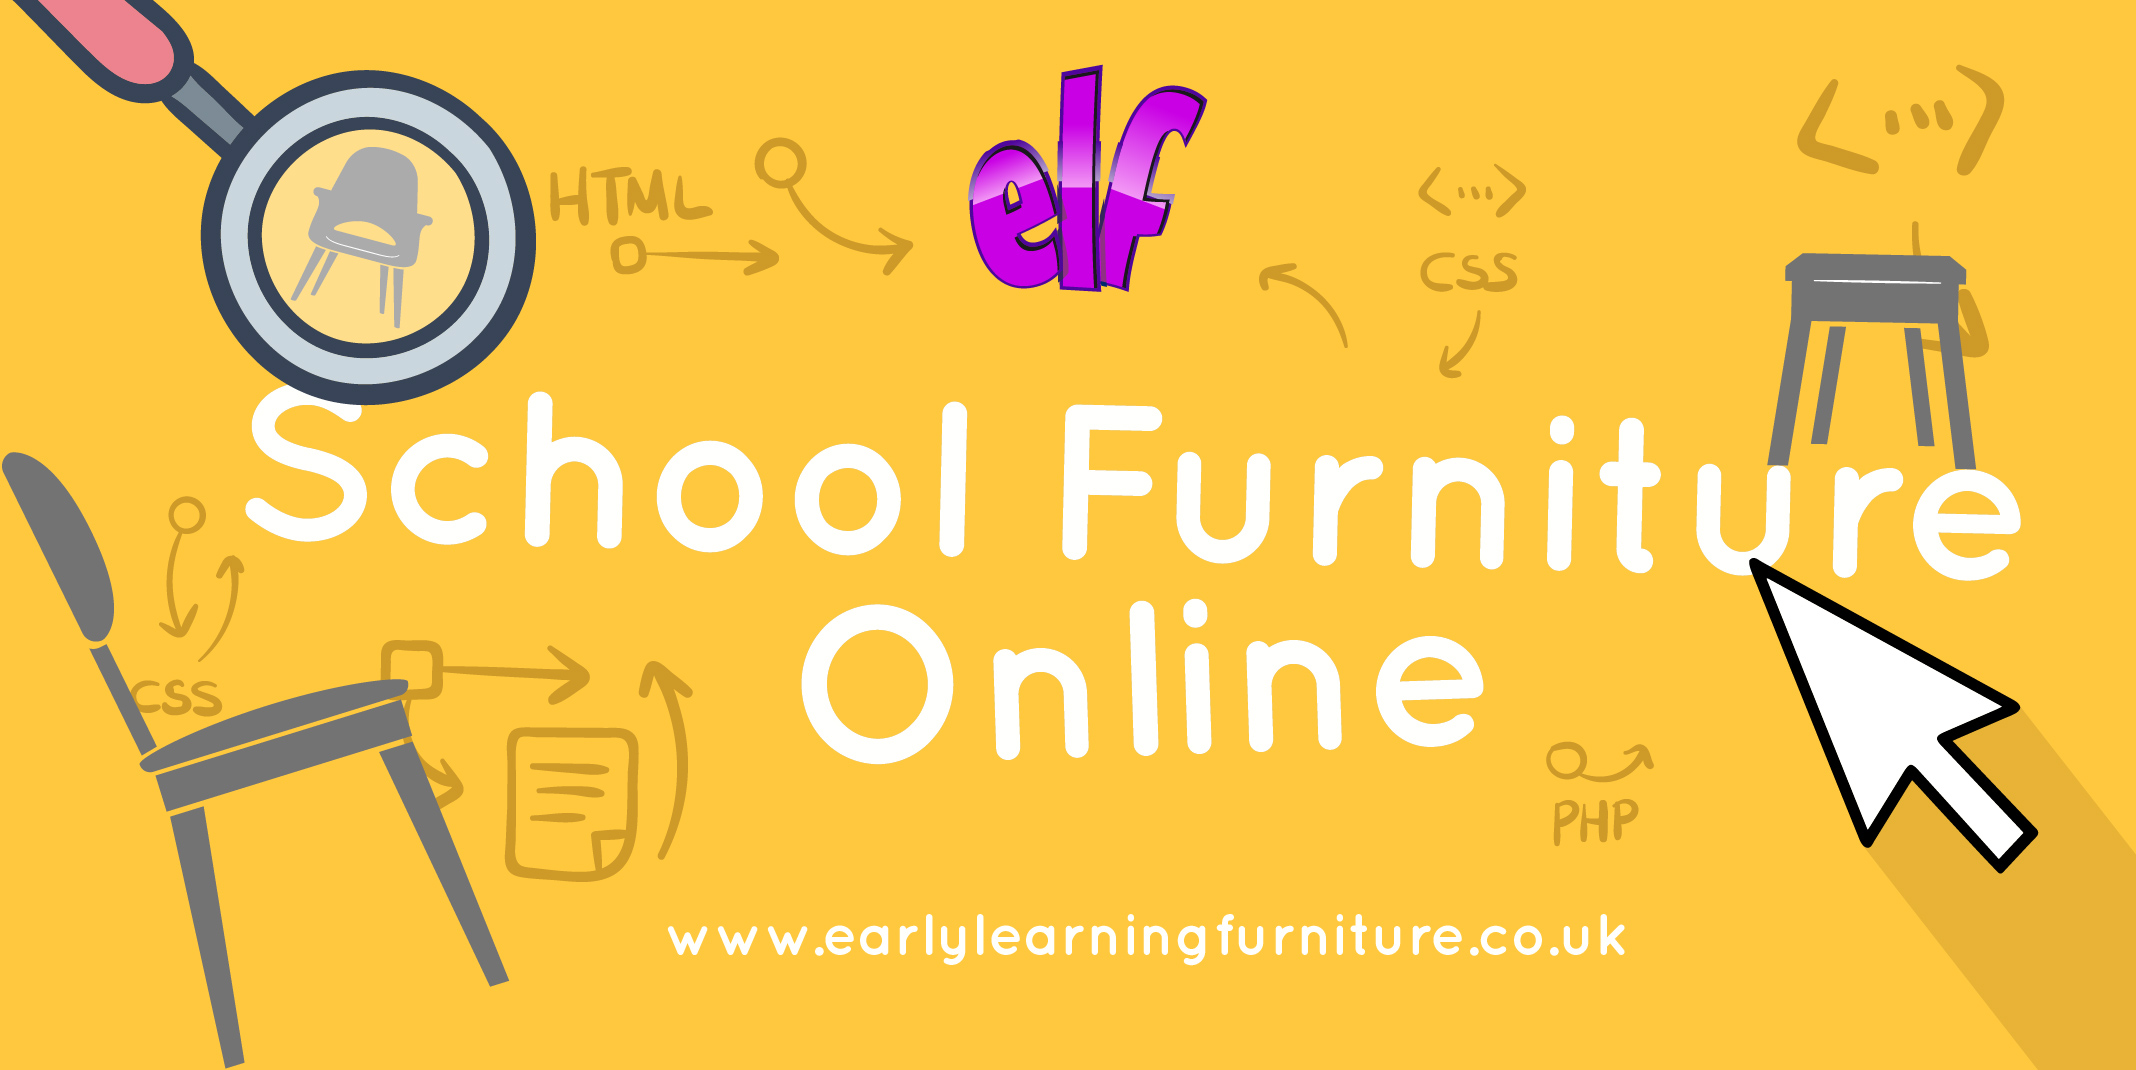 School Furniture Online